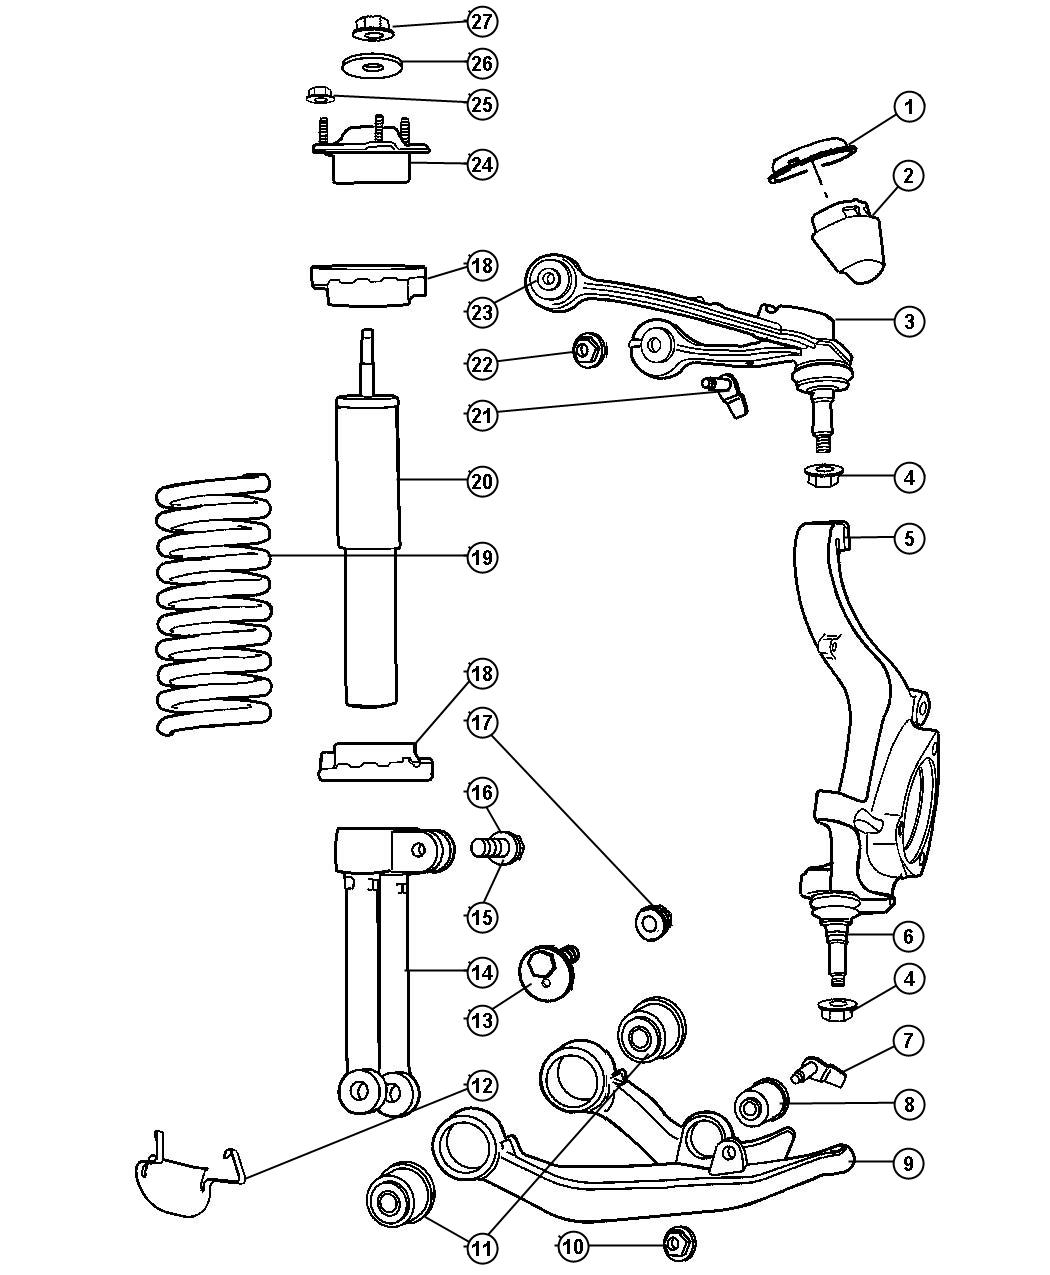 Ford Ranger Freeze Plug Locations in addition Dodge Dakota Ecm Location besides HP PartList further HP PartList in addition Jeep Dana 44 Rear Axle Diagram On Cj7. on jeep cherokee engine replacement